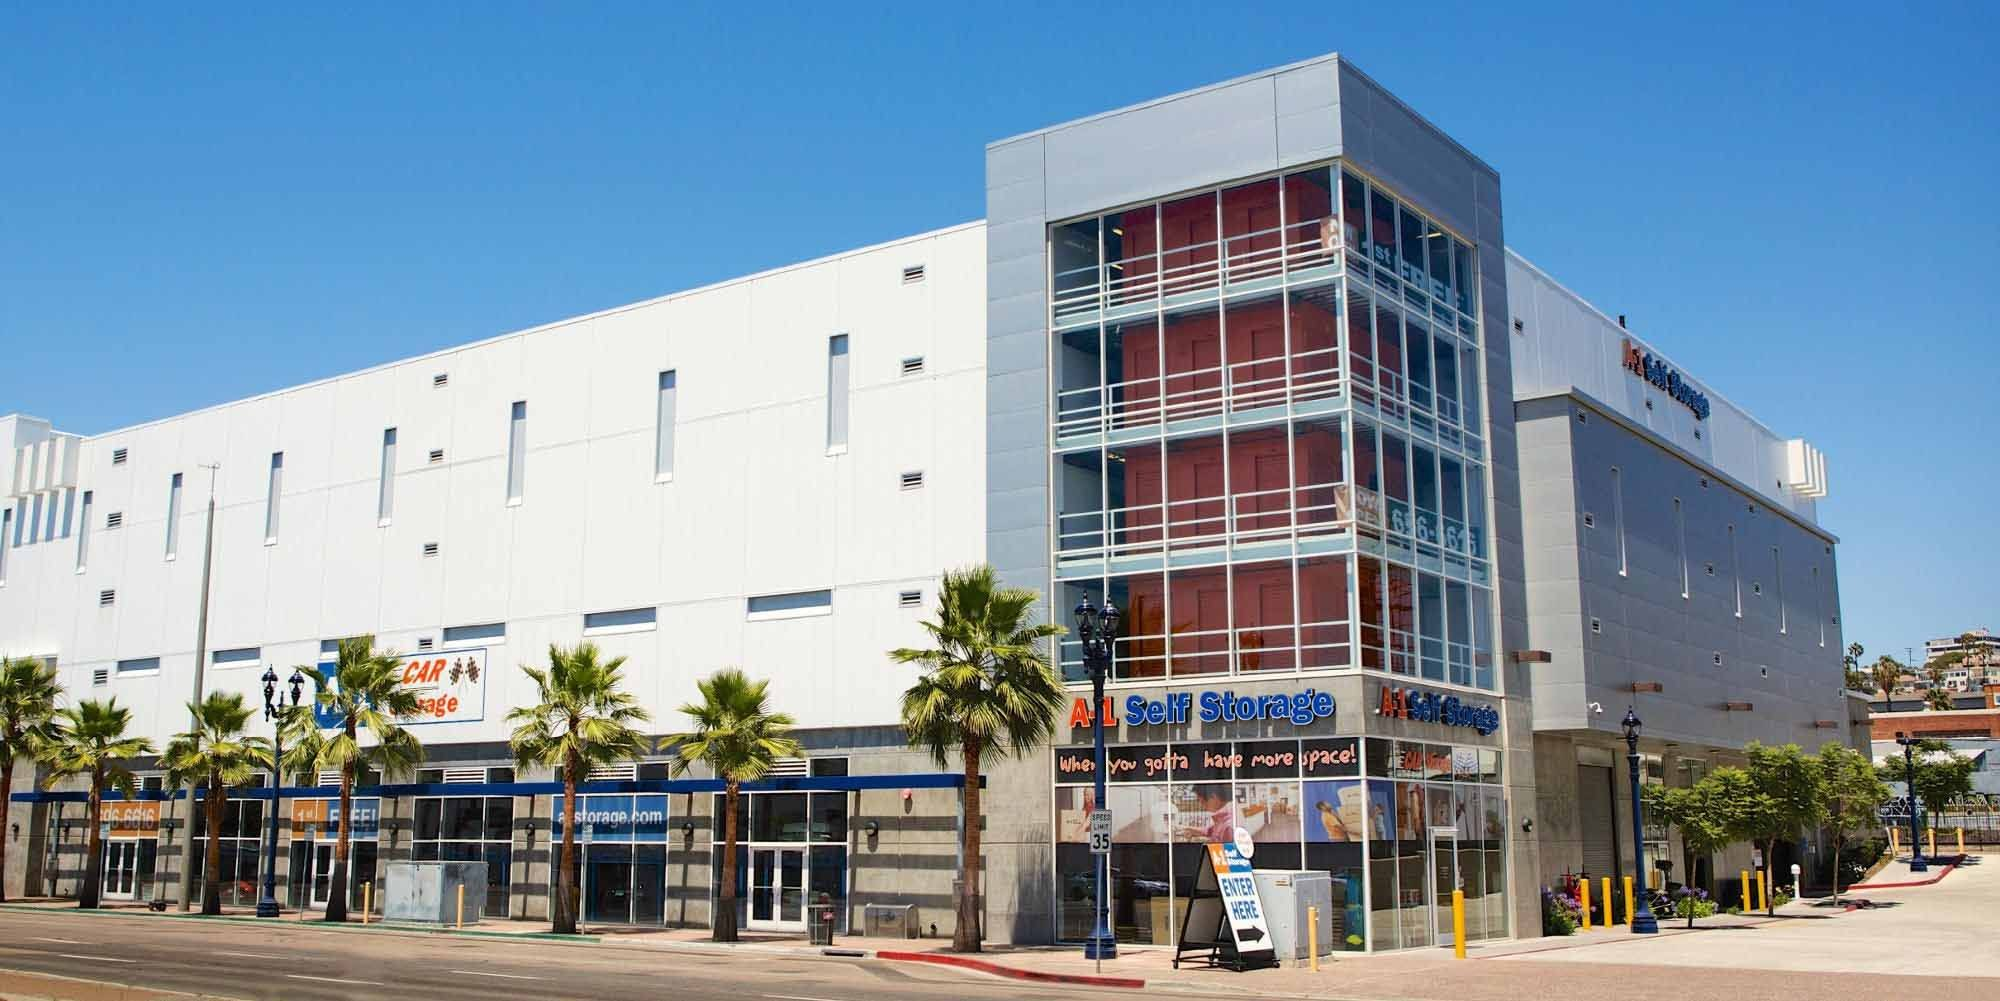 Self storage in San Diego CA